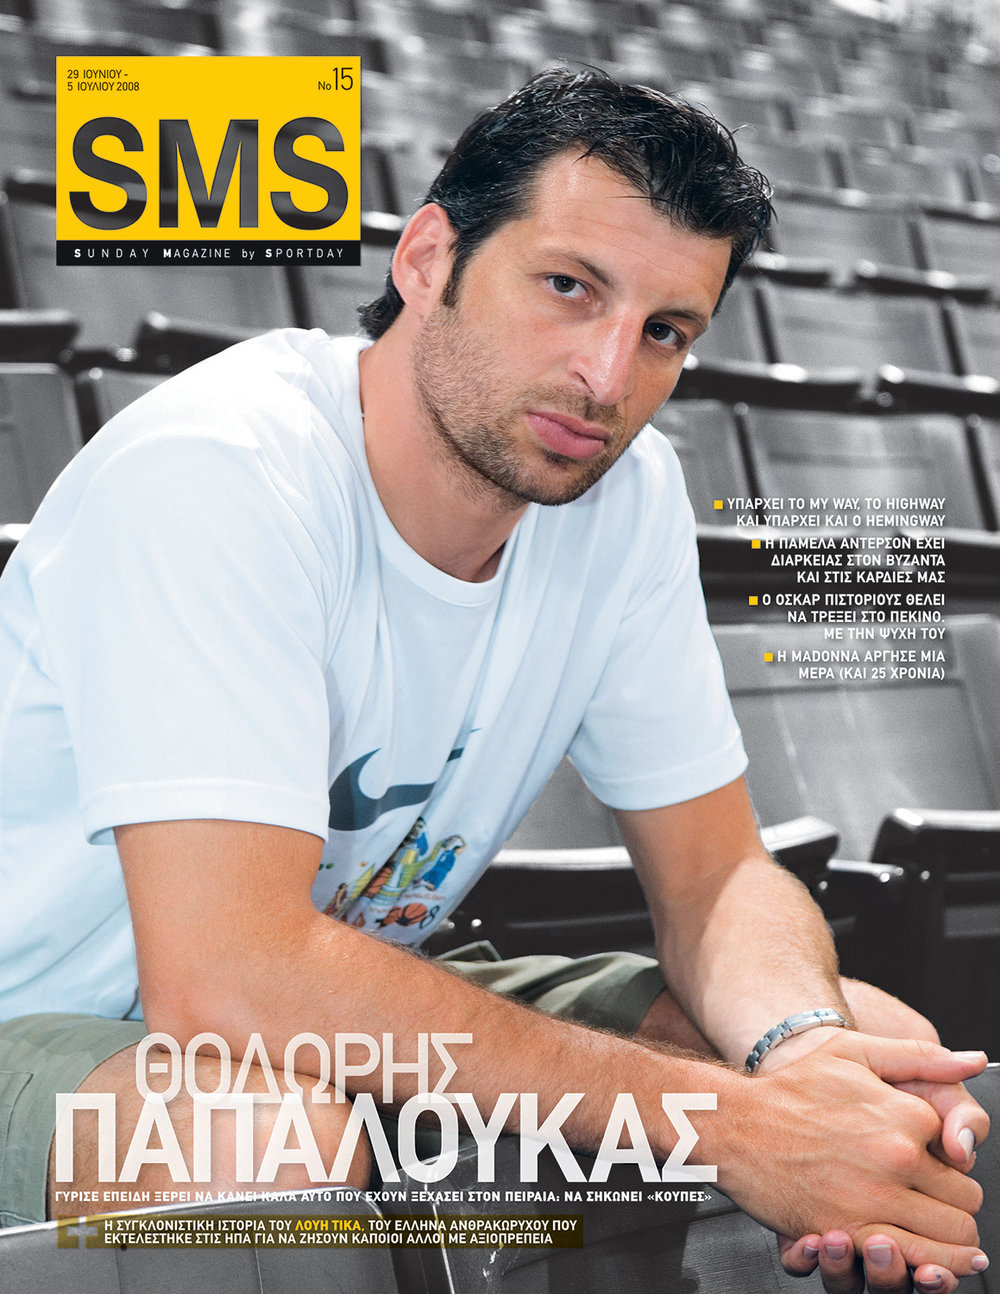 Thodoris Papaloukas / basketball player / SMS Sportday No 15